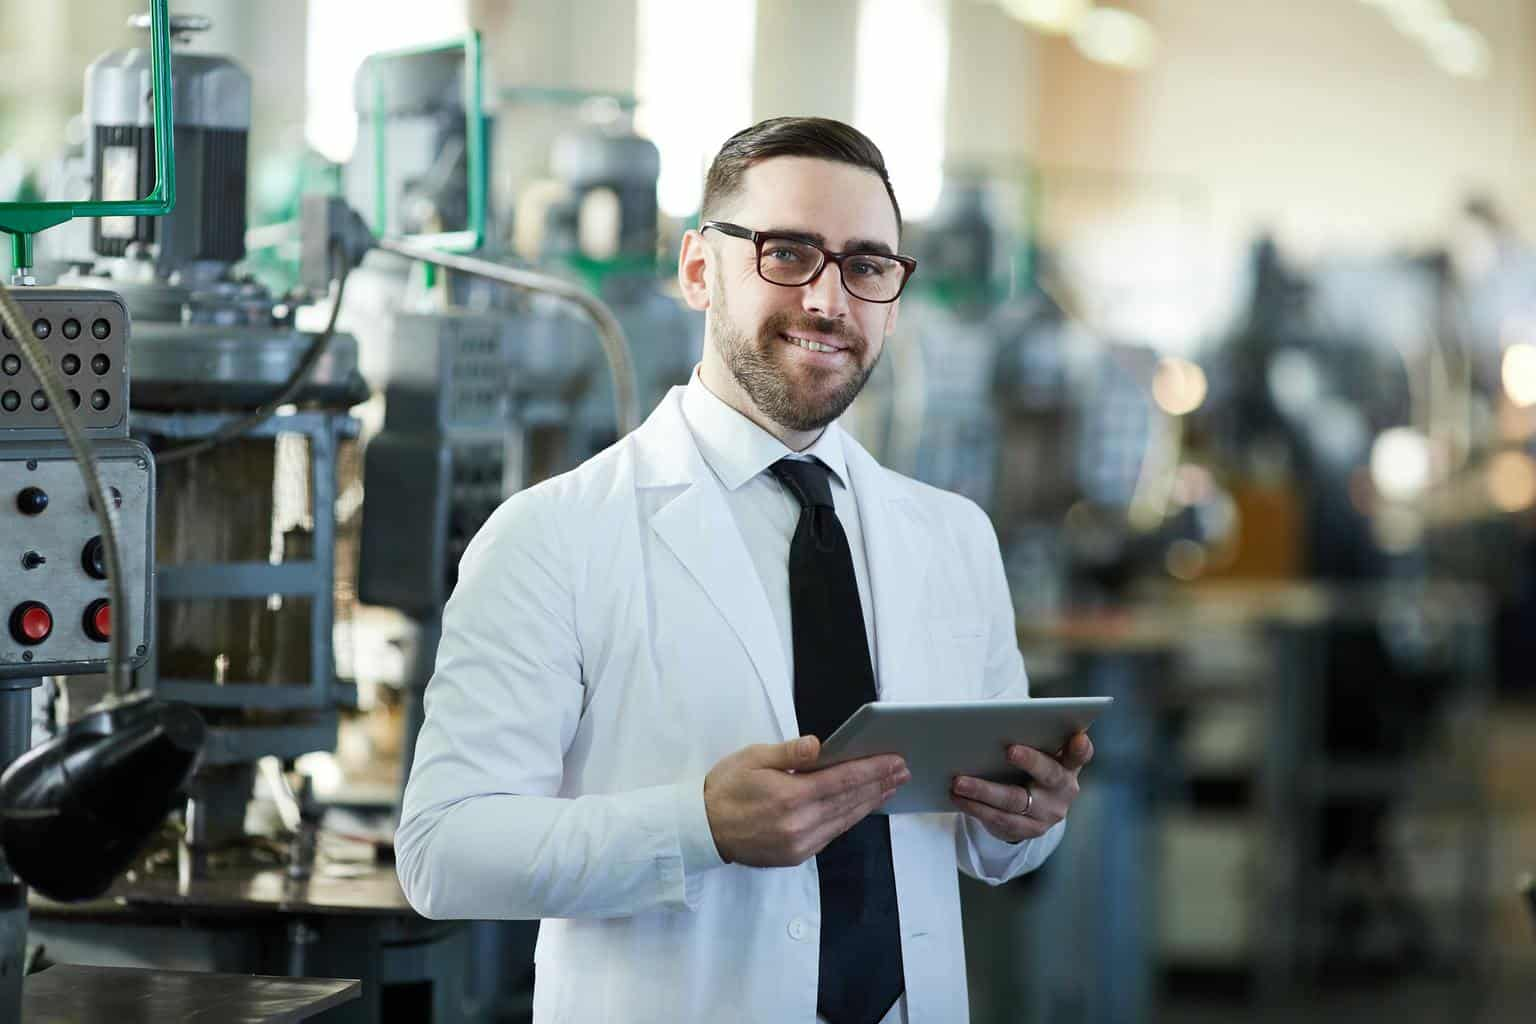 Handsome Factory Manager Holding Tablet